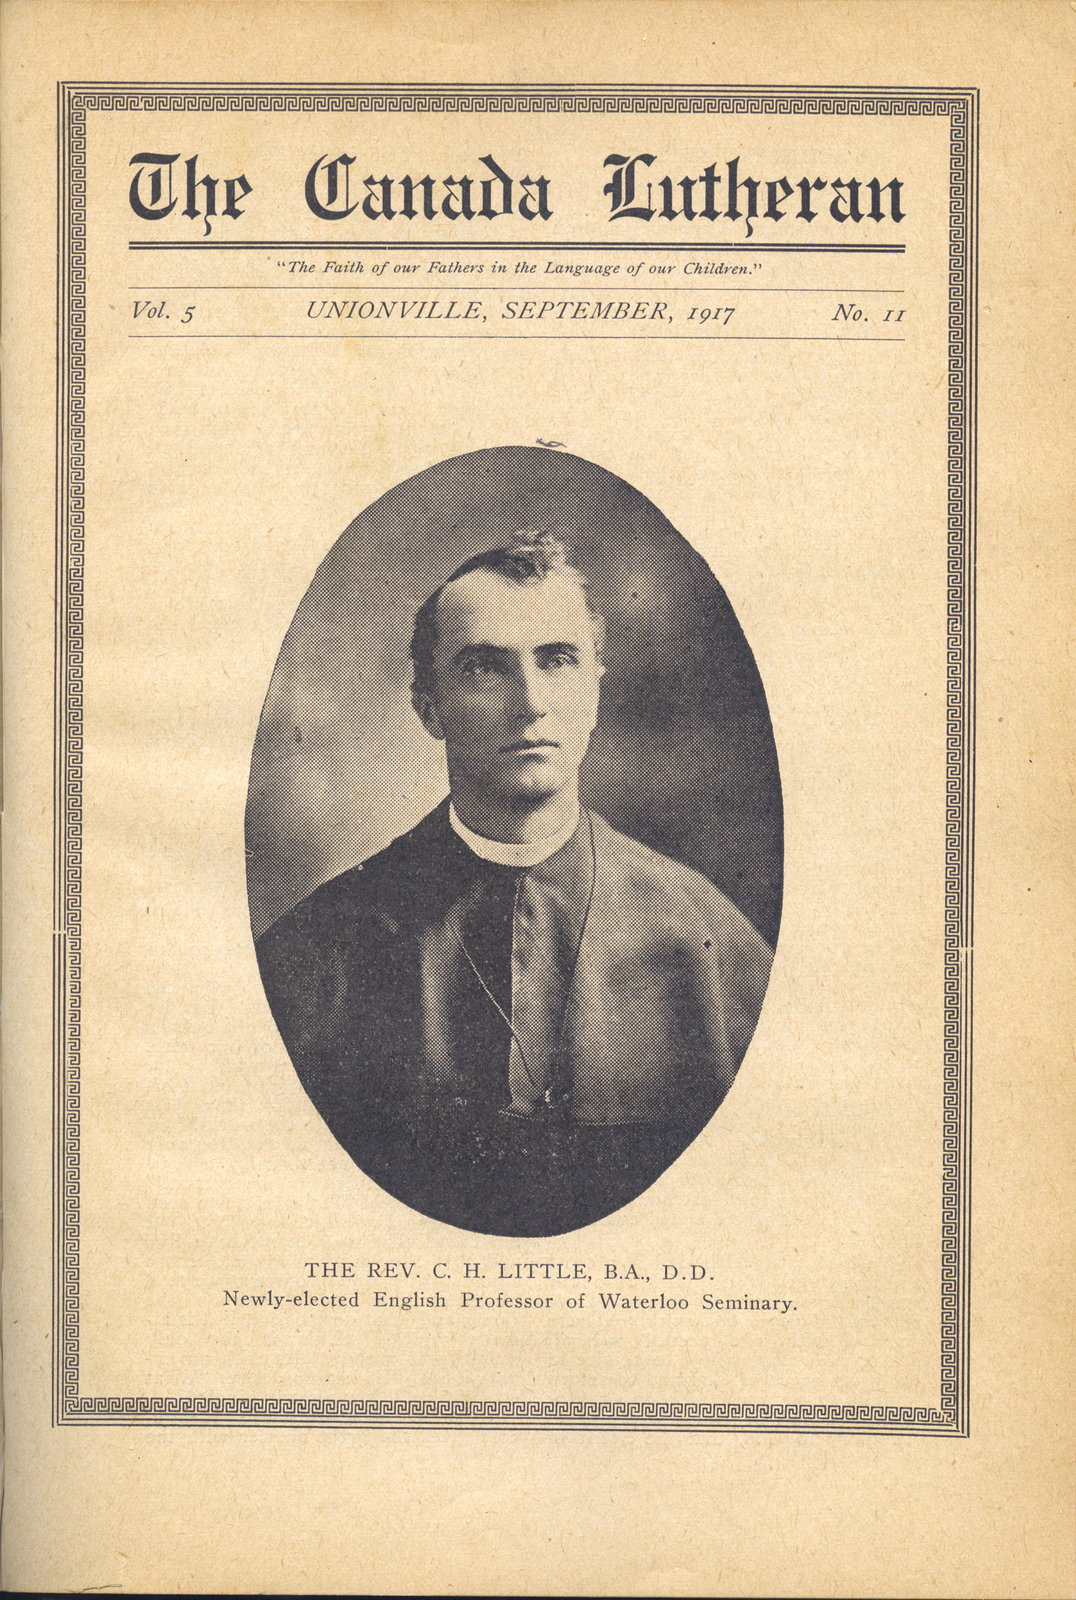 The Canada Lutheran, vol. 5, no. 11, September 1917